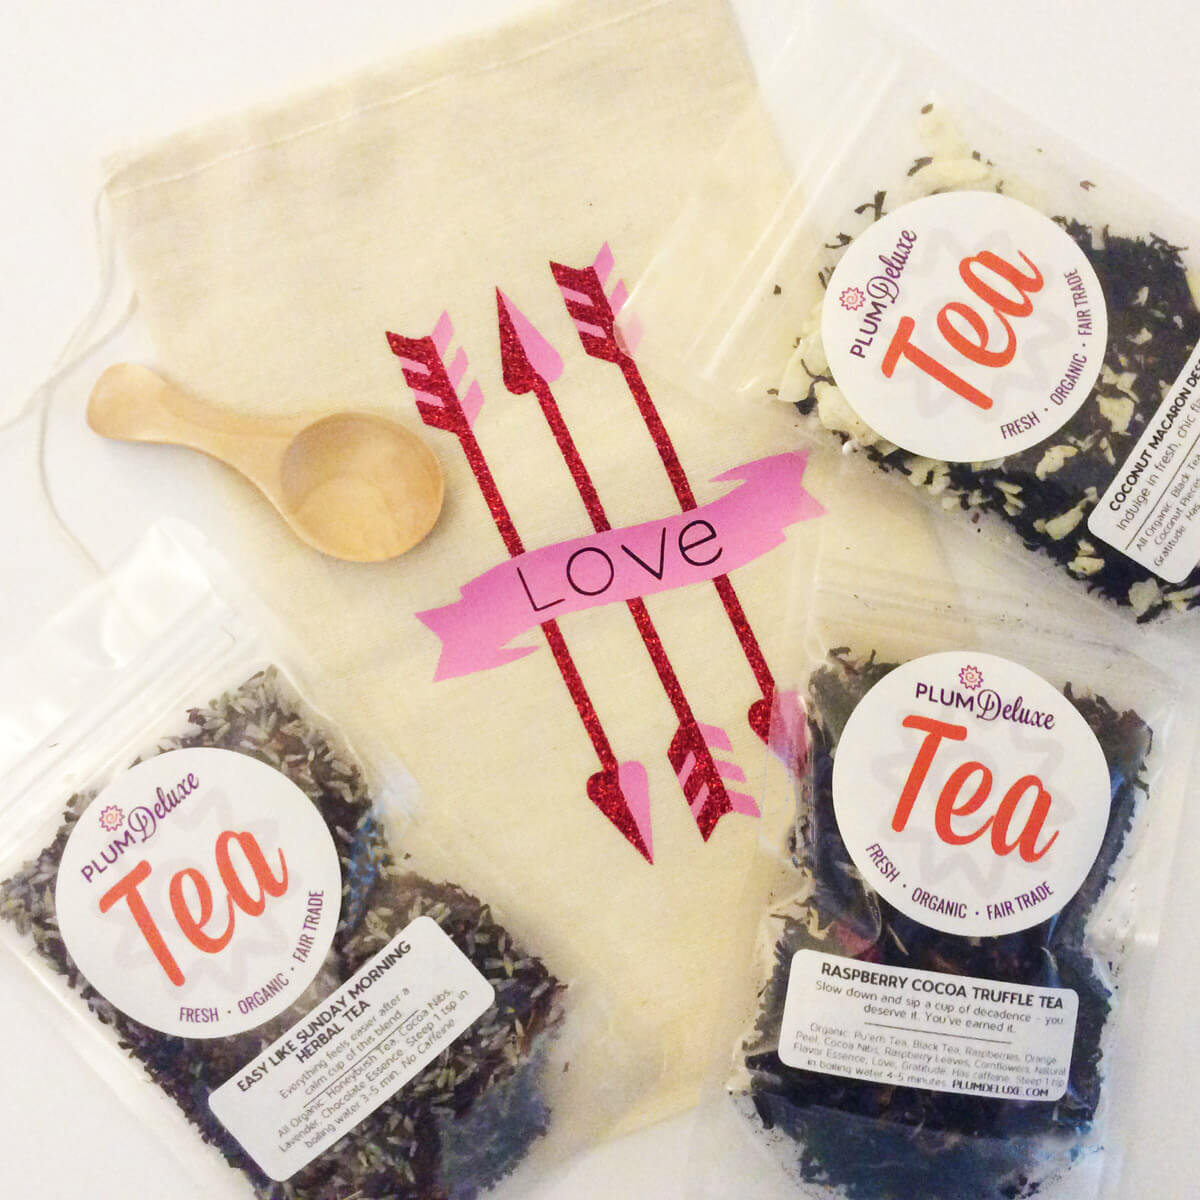 If you, your partner, or your friends love tea, be sure to pick out the best Valentine tea gifts to make them smile.